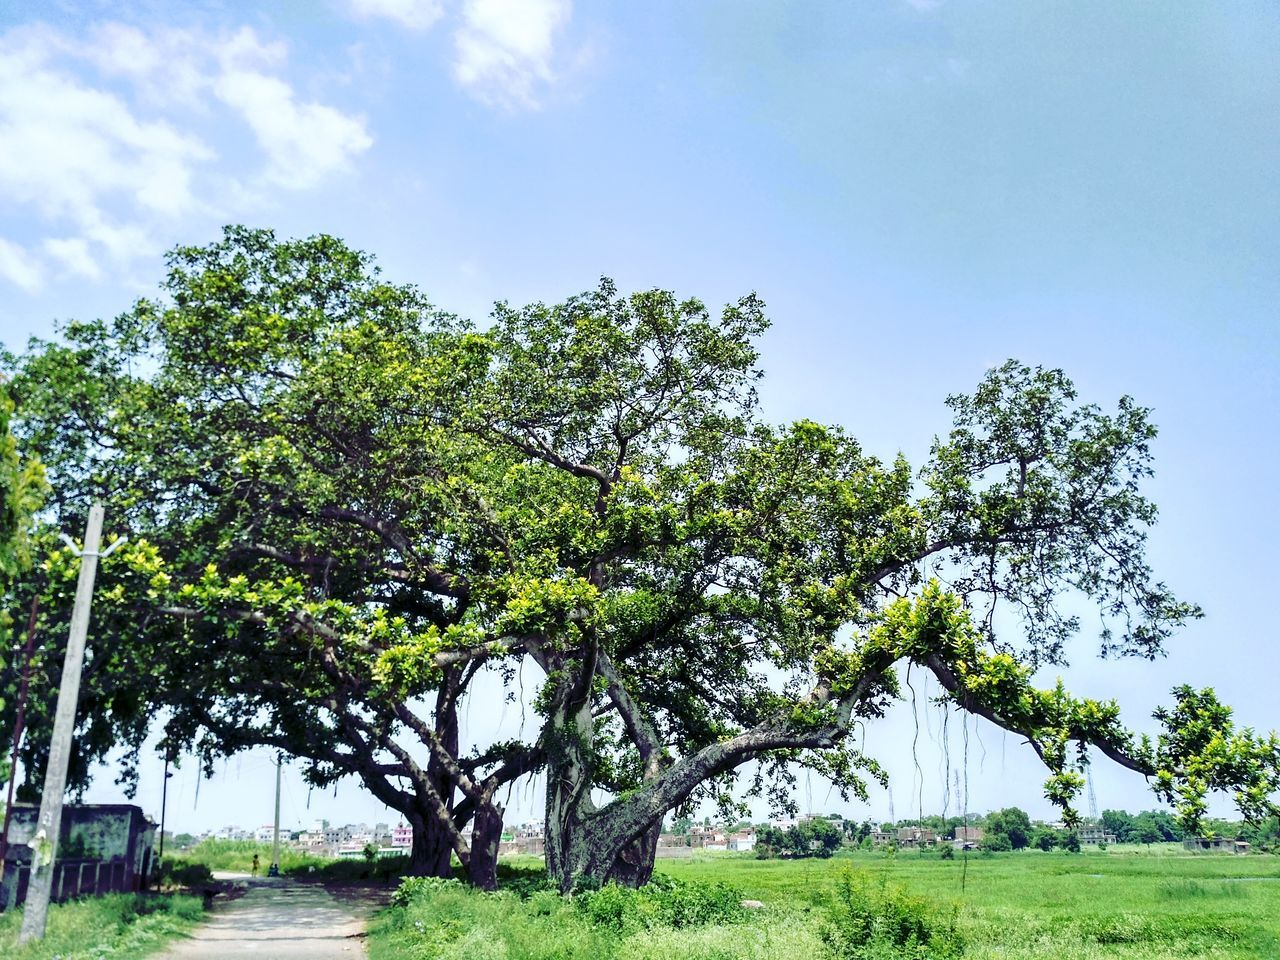 Tree Outdoors Nature Day No People Sky Beauty In Nature Green Color Grass Growth Rural Scene